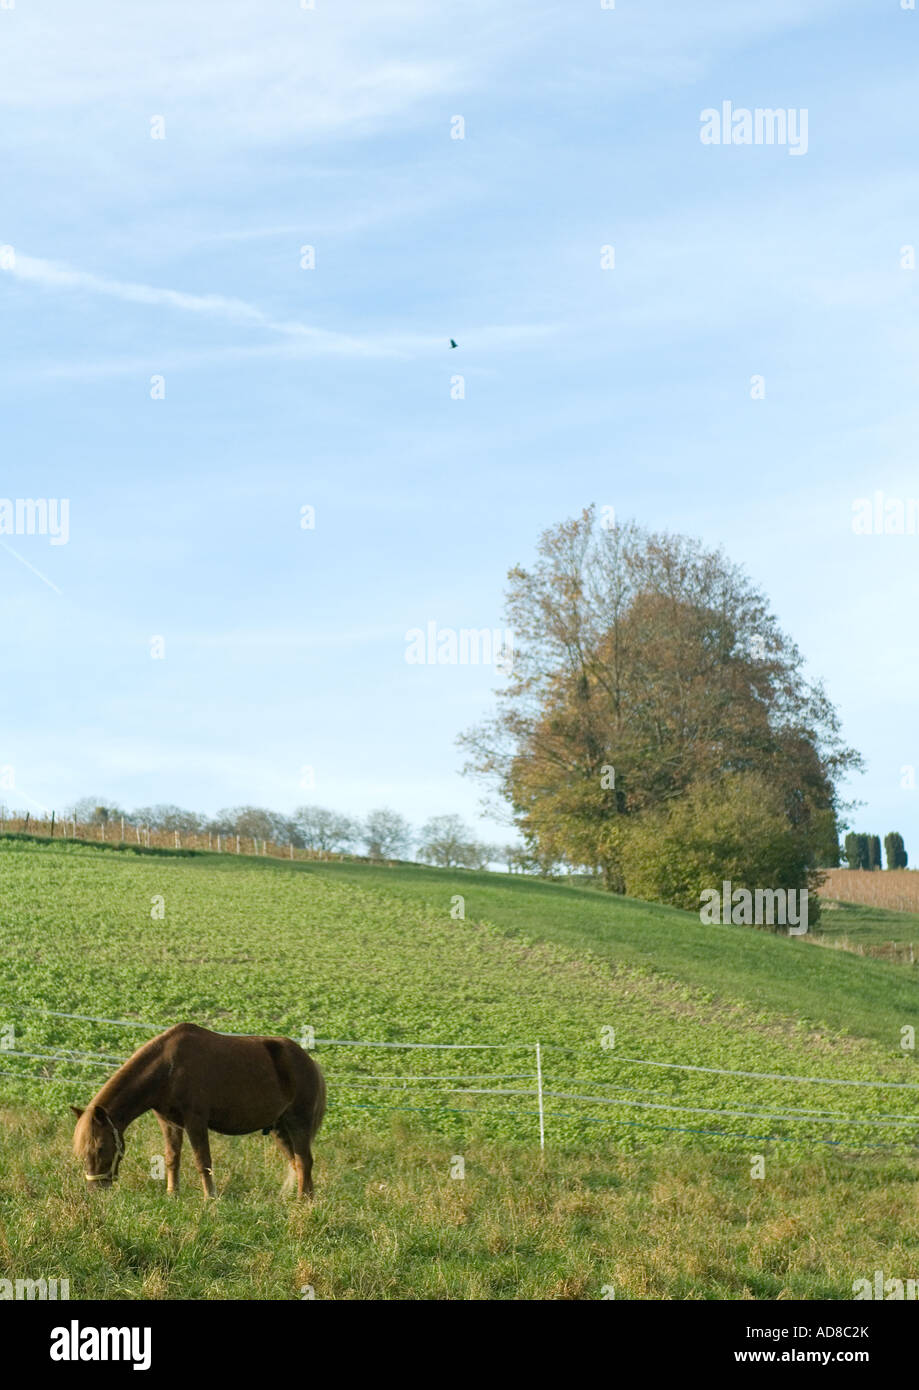 Horse grazing in green pasture Stock Photo